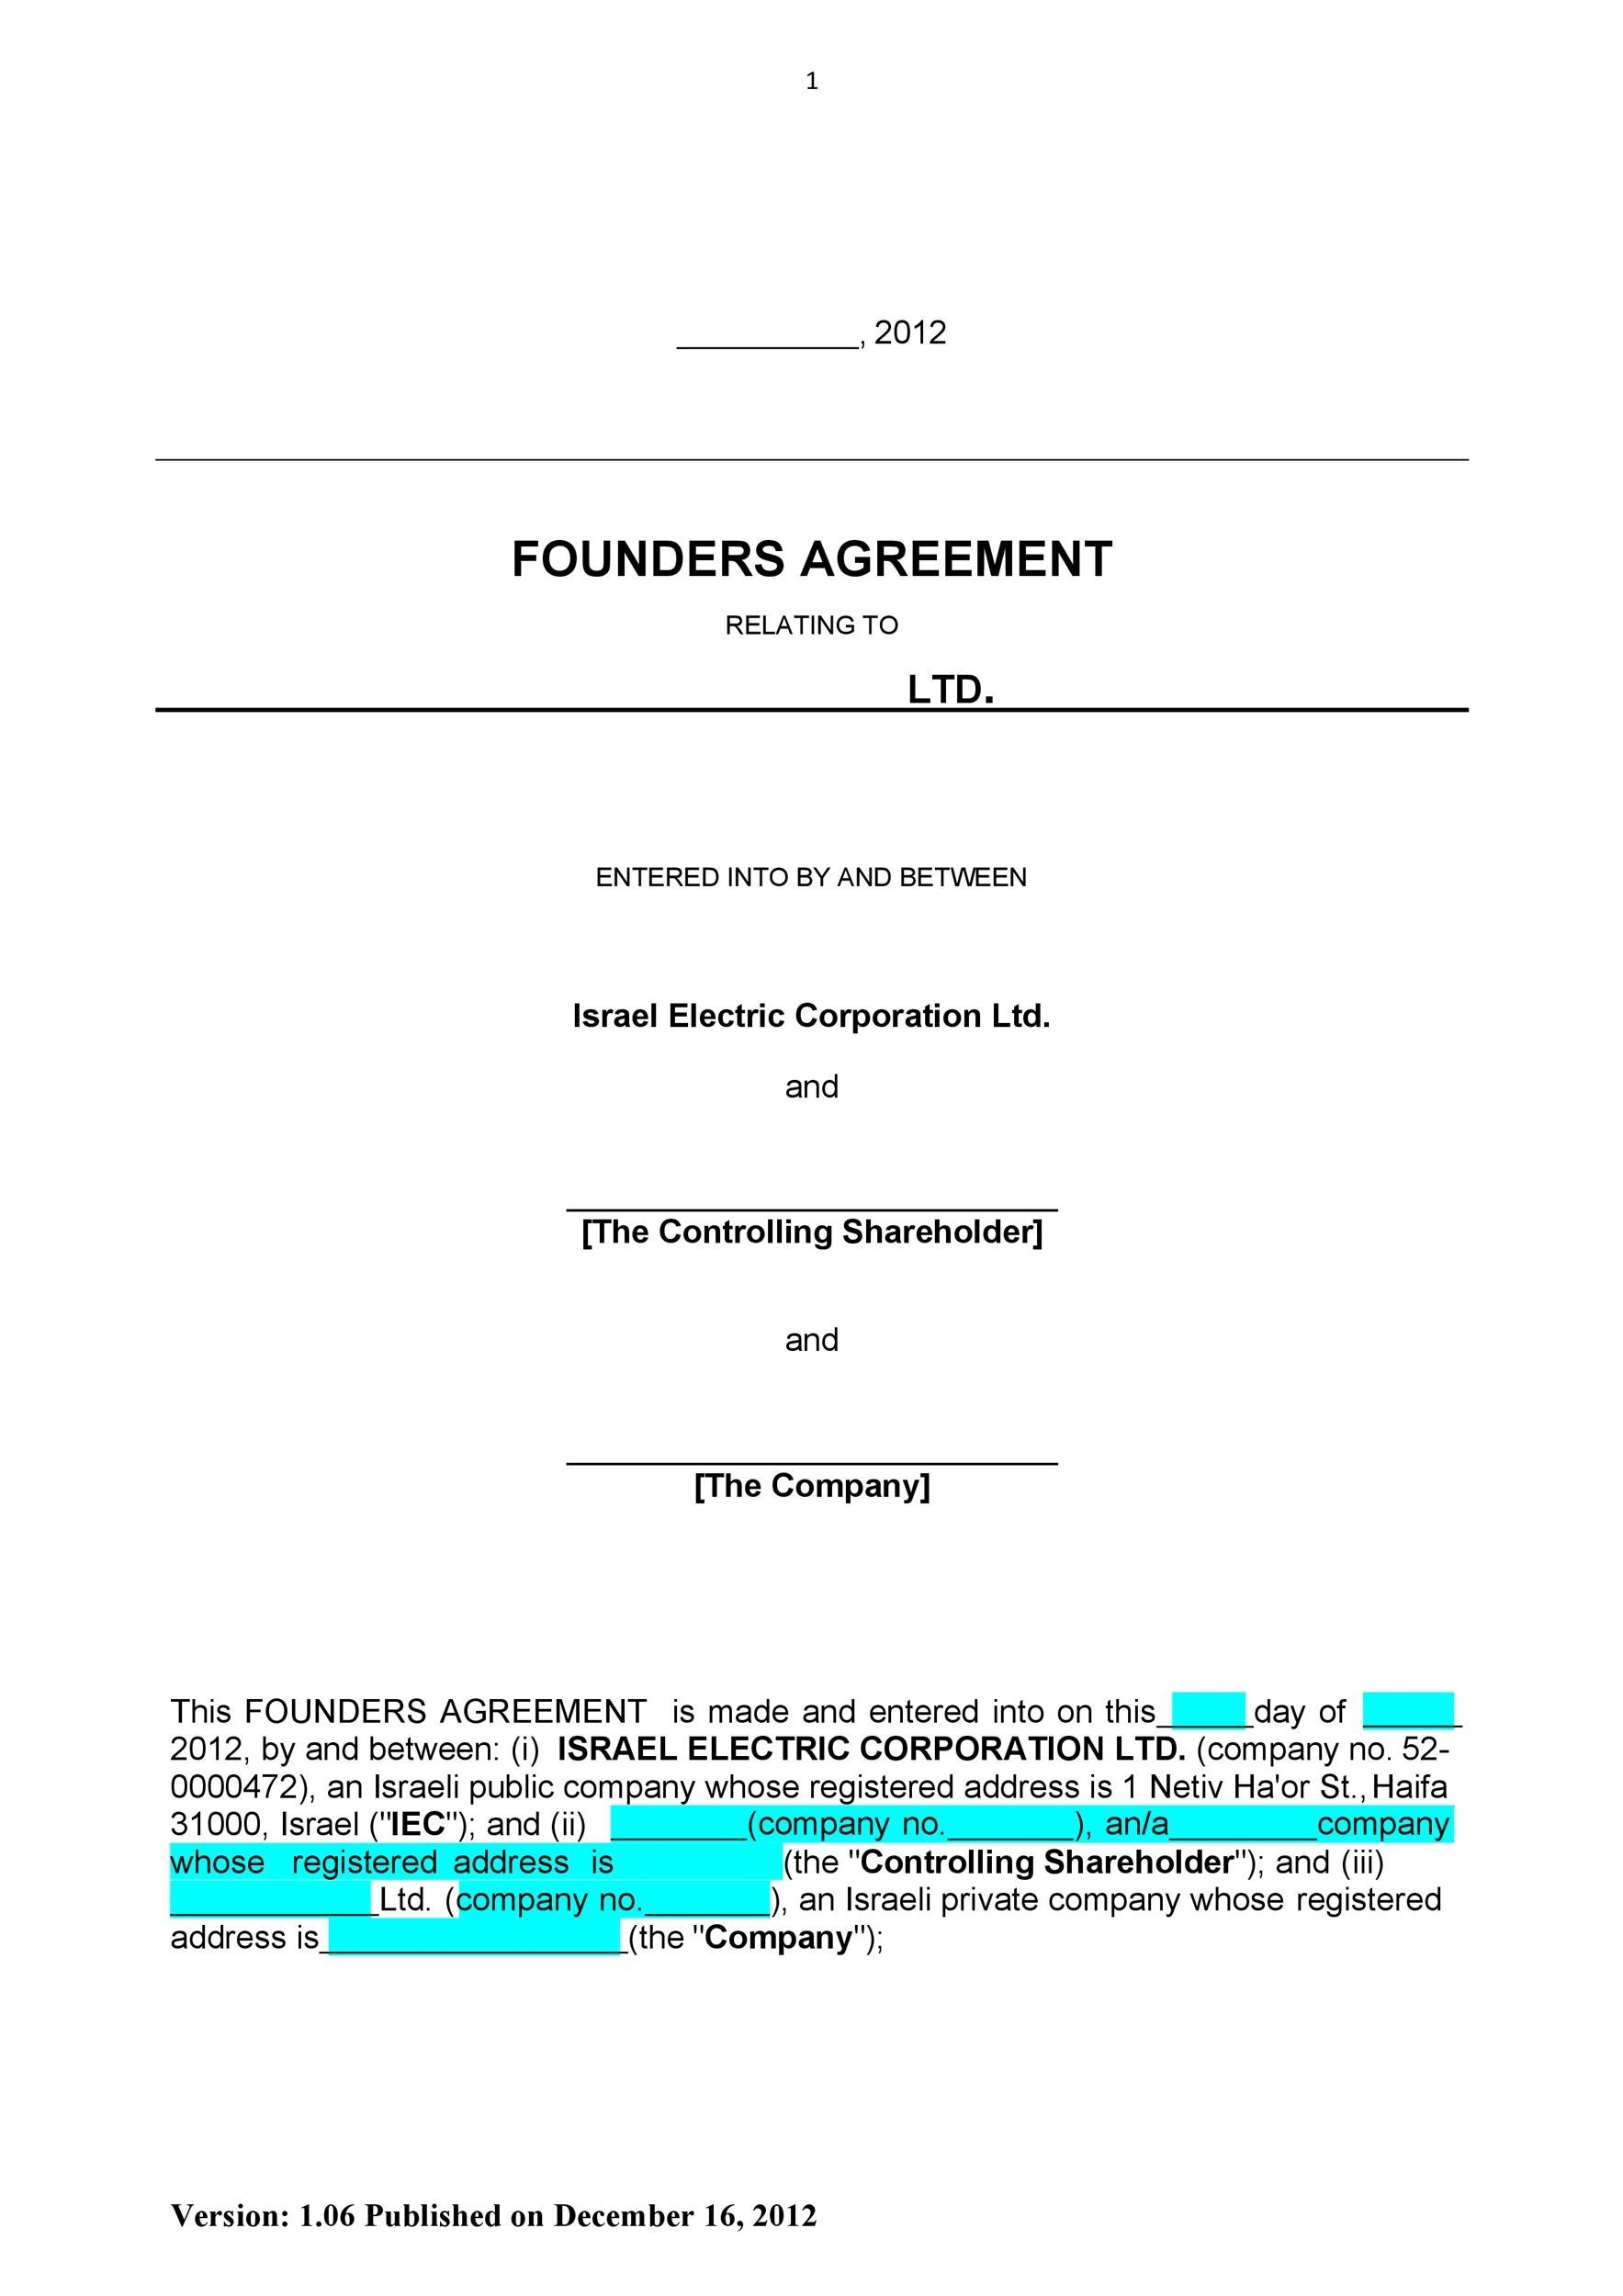 Free founders agreement 04